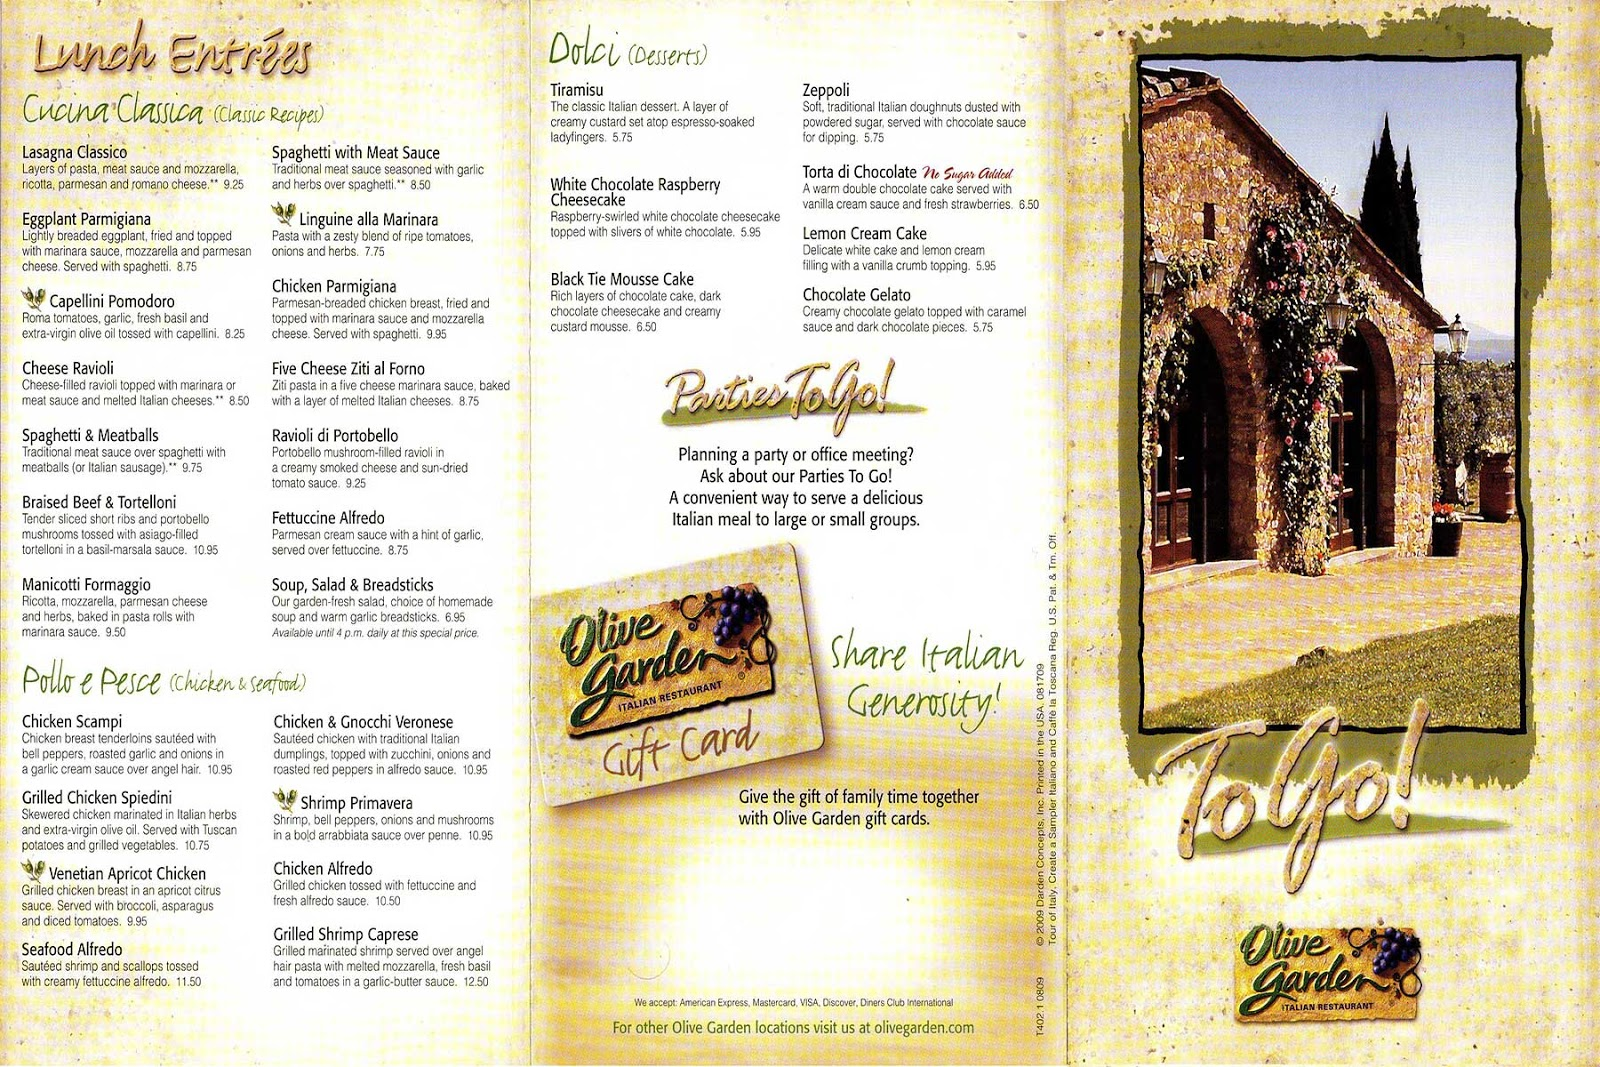 Olive Garden Menu Pdf: Sam's Typography/ Graphic Design Blog: Olive Garden